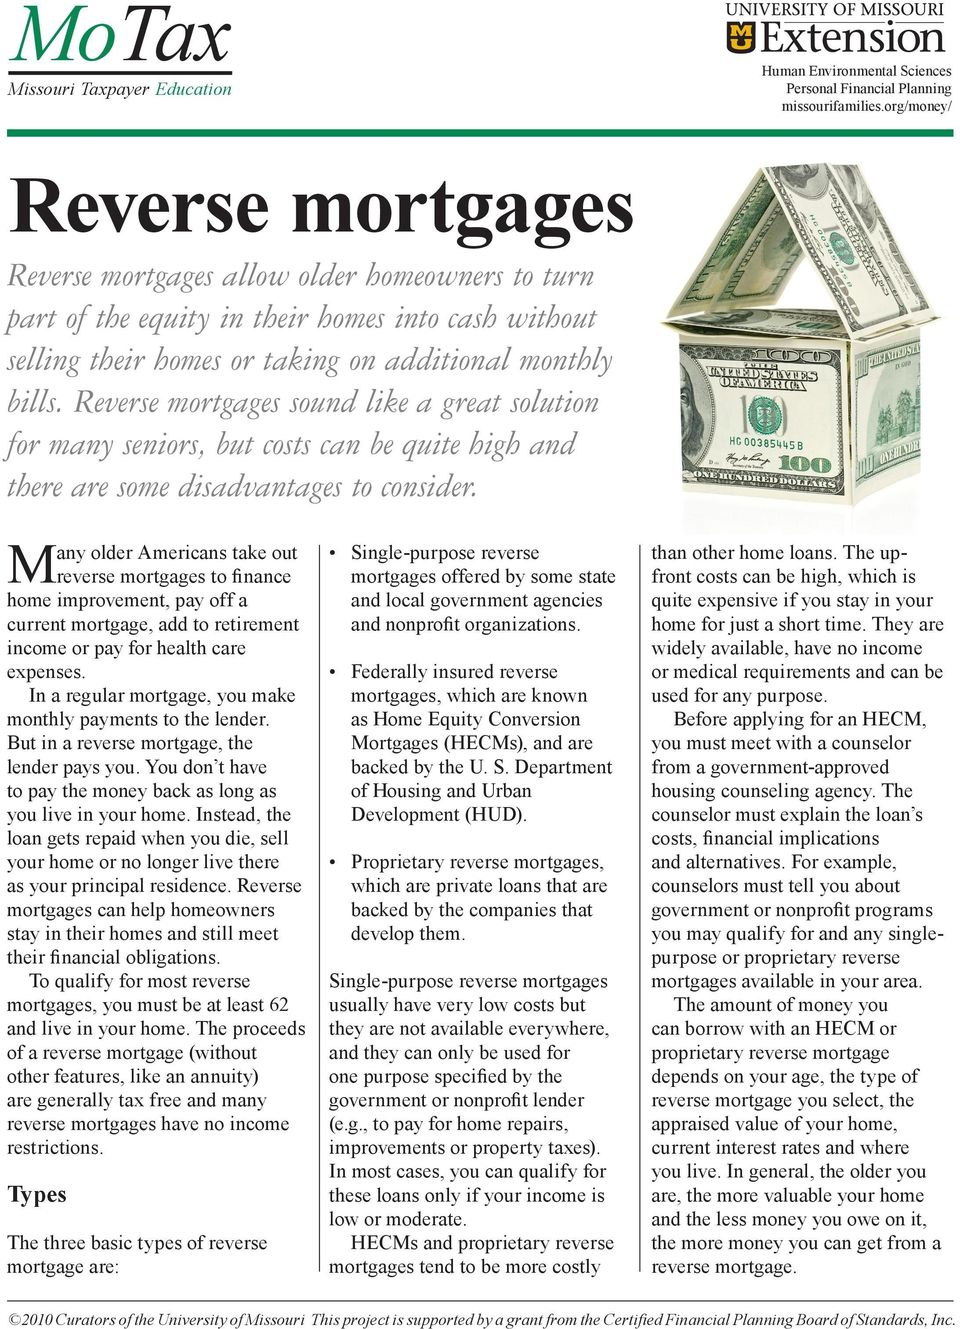 Reverse mortgages sound like a great solution for many seniors, but costs can be quite high and there are some disadvantages to consider.